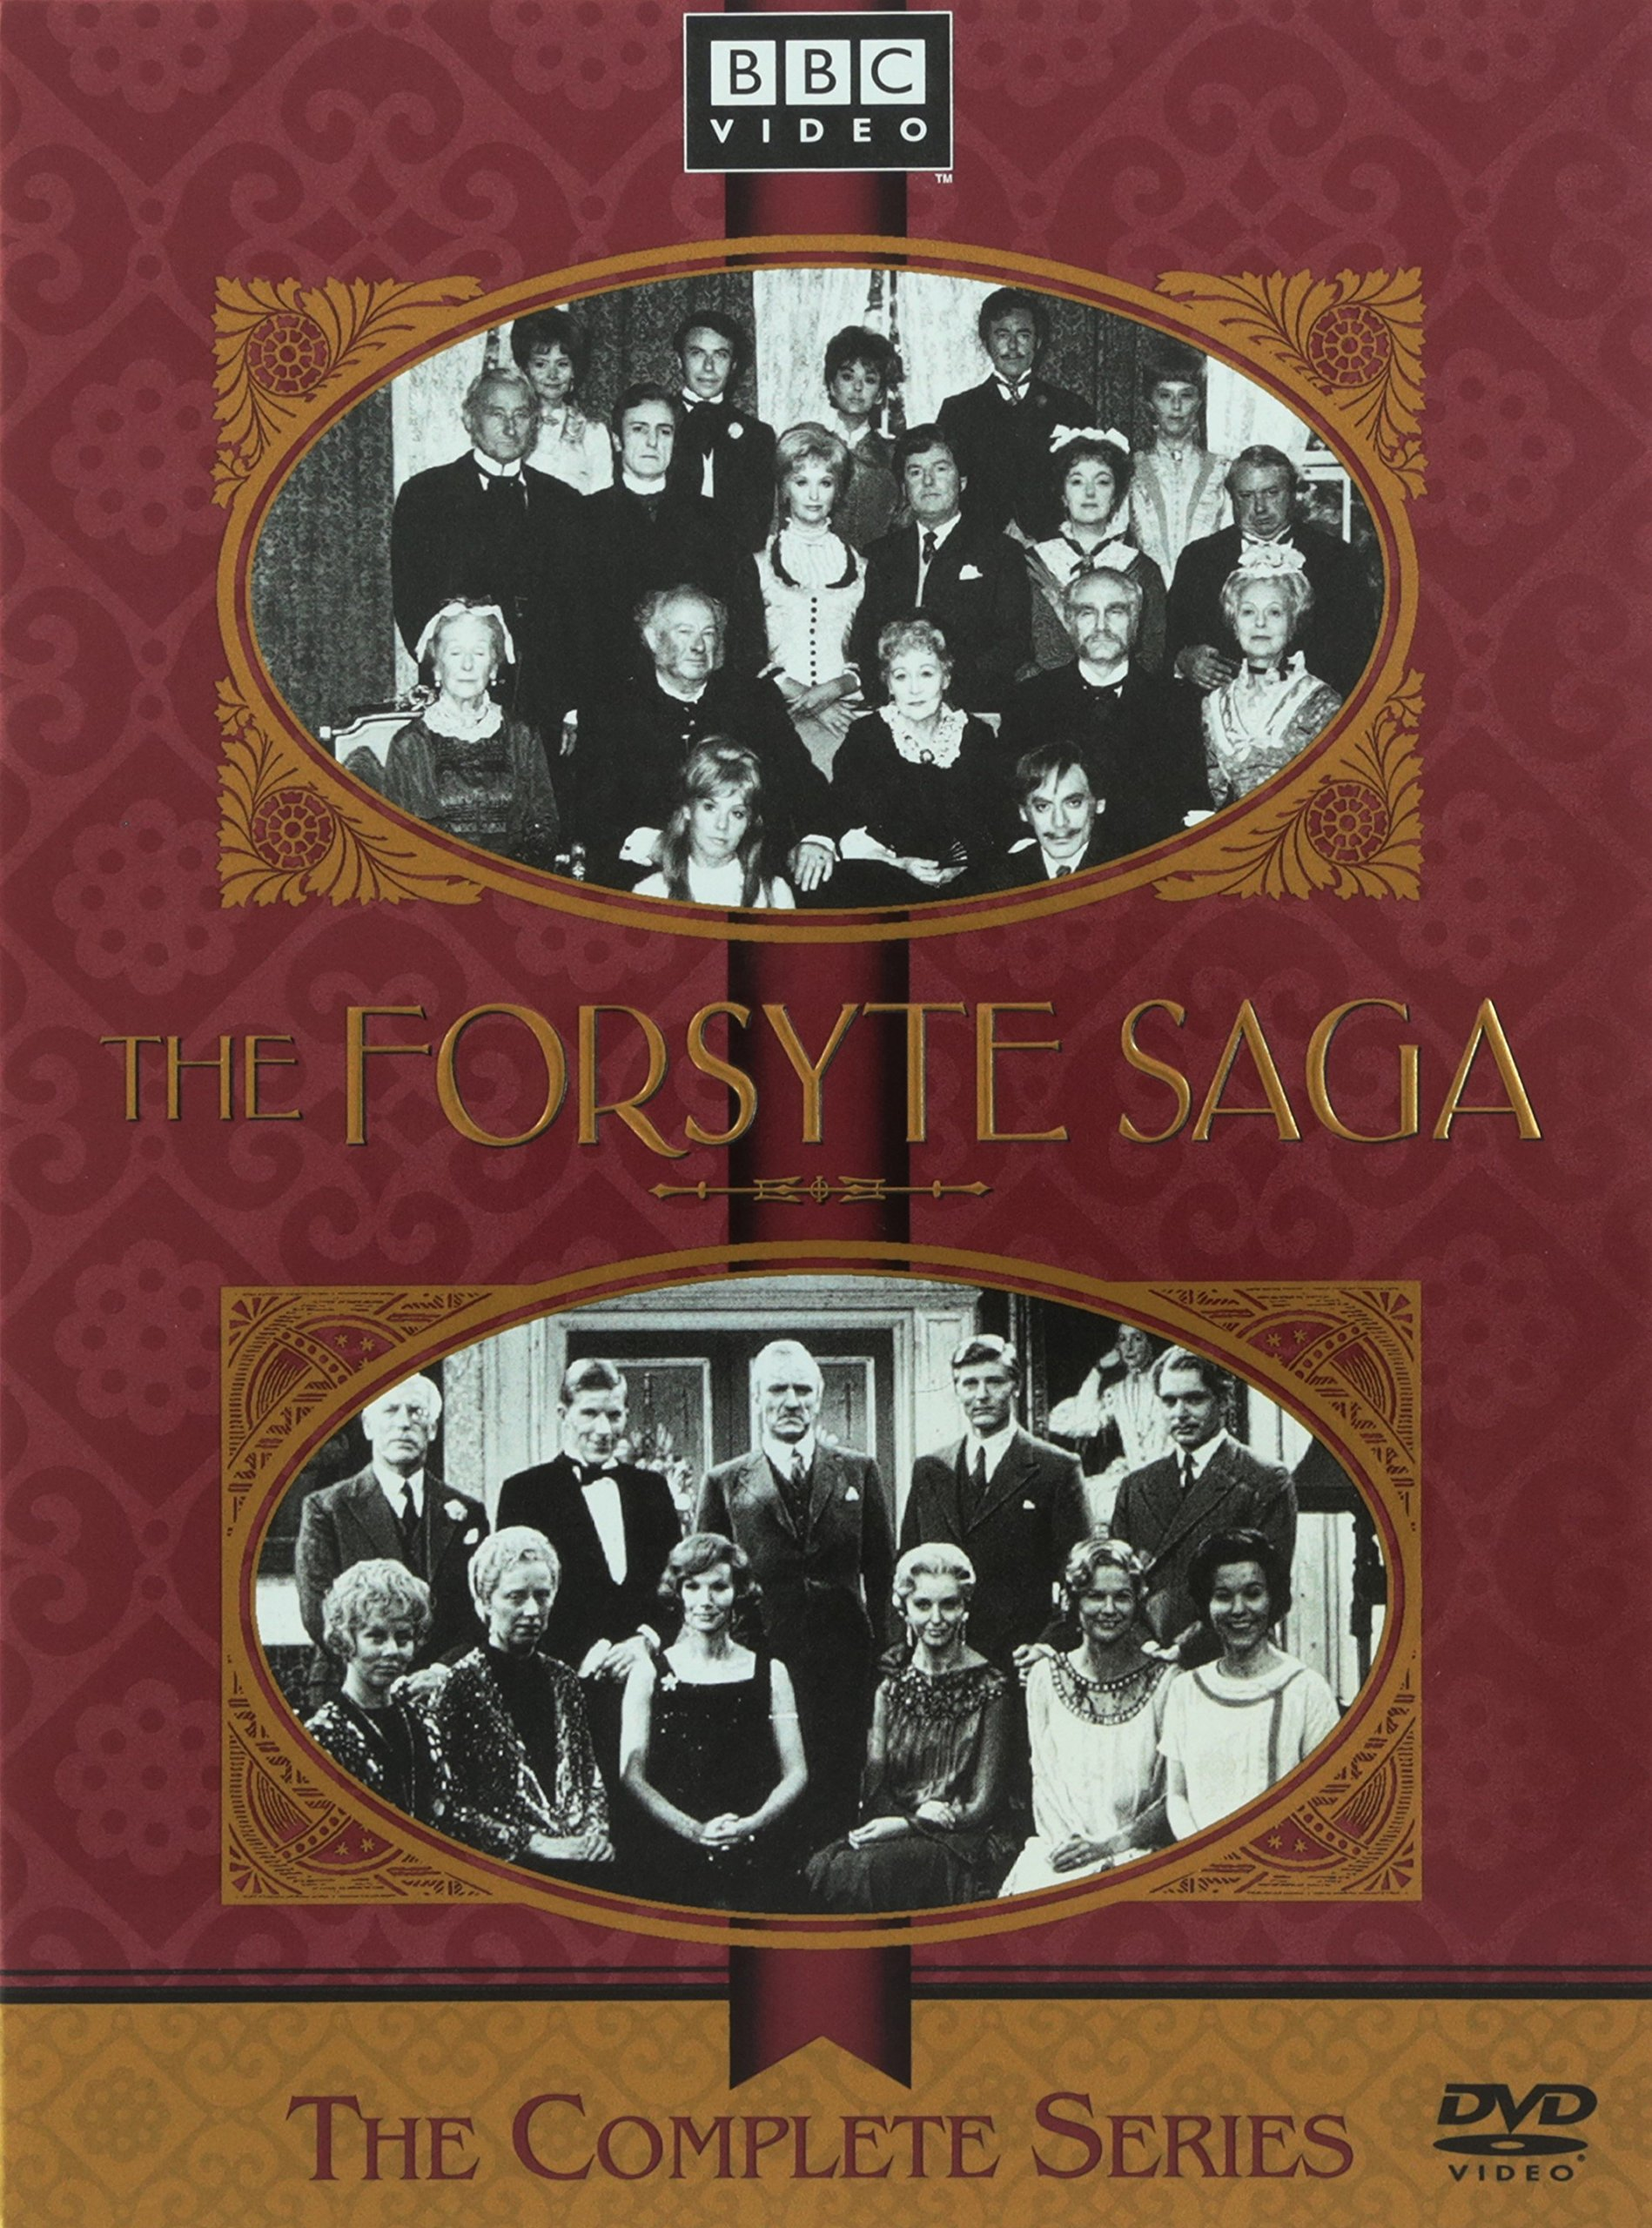 The Forsyte Saga - The Complete Series